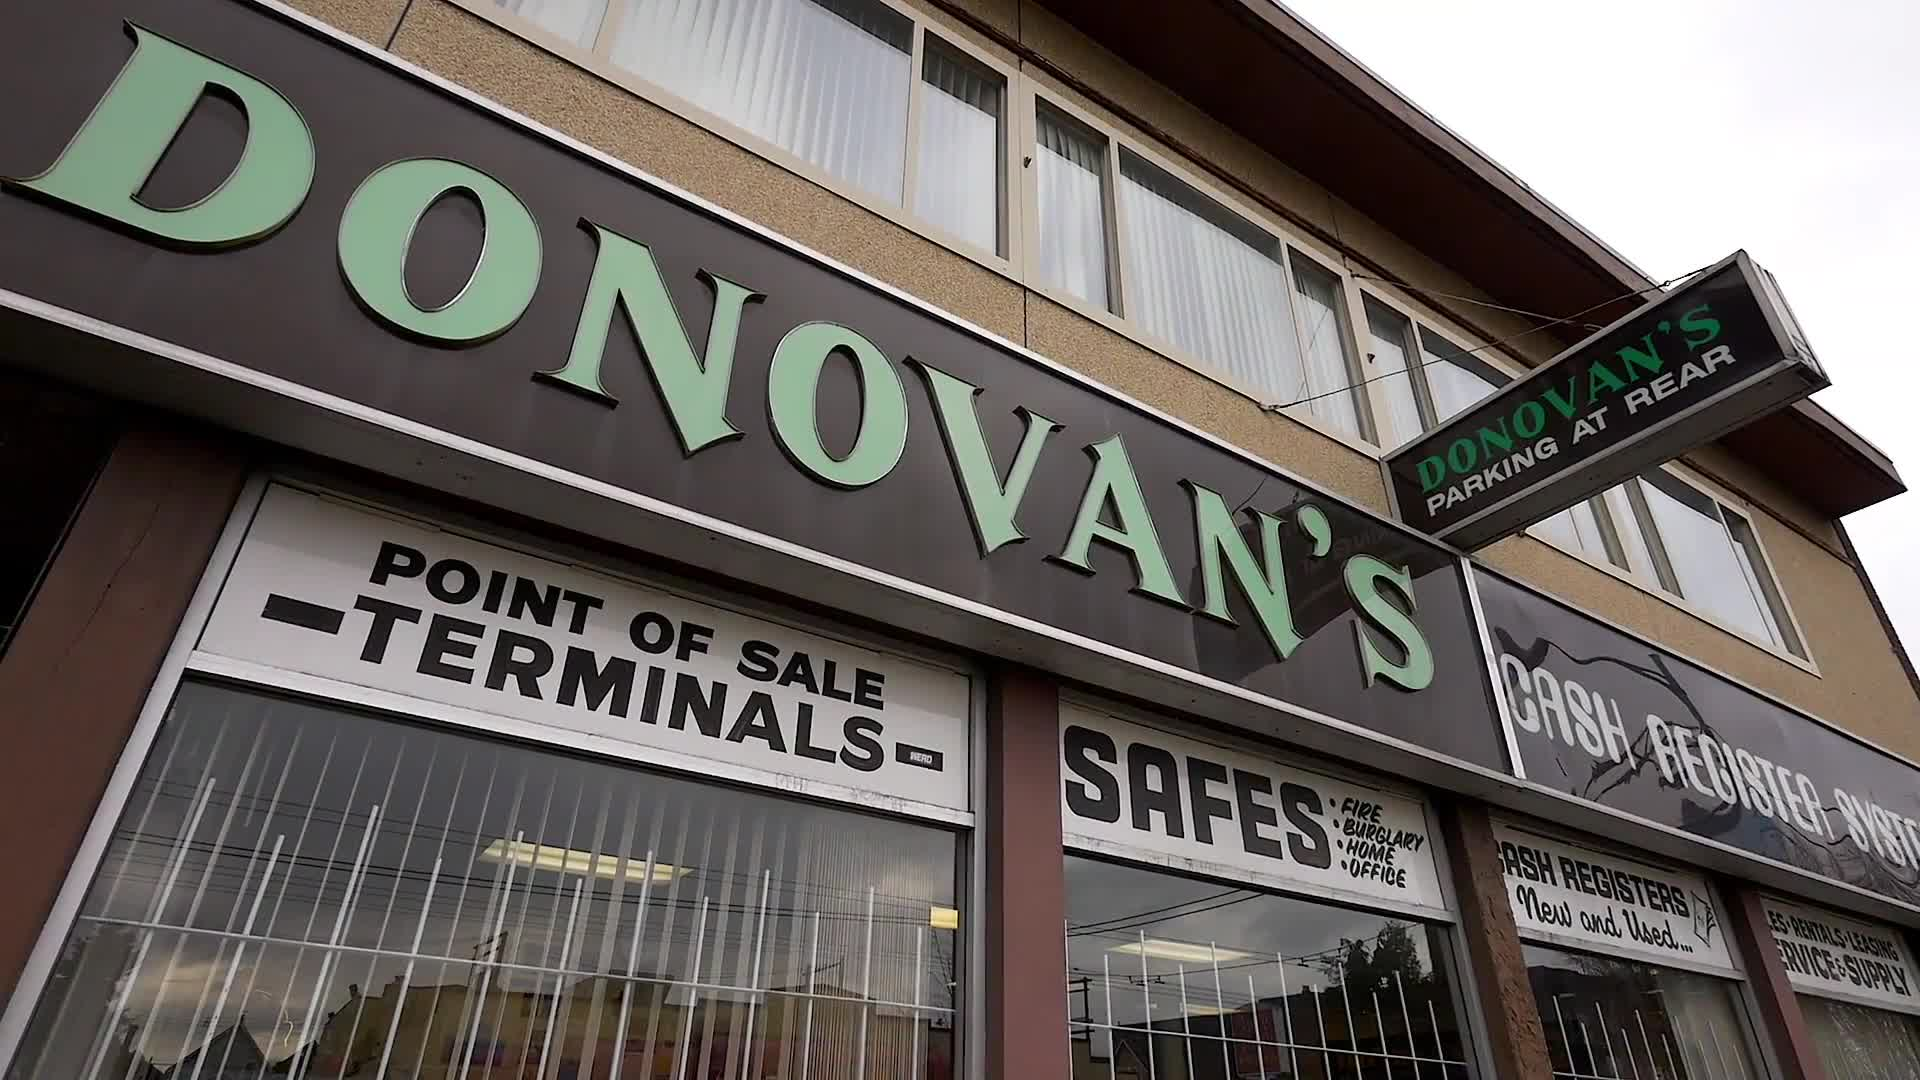 Donovan Sales Ltd - Safes & Vaults - 6042544777